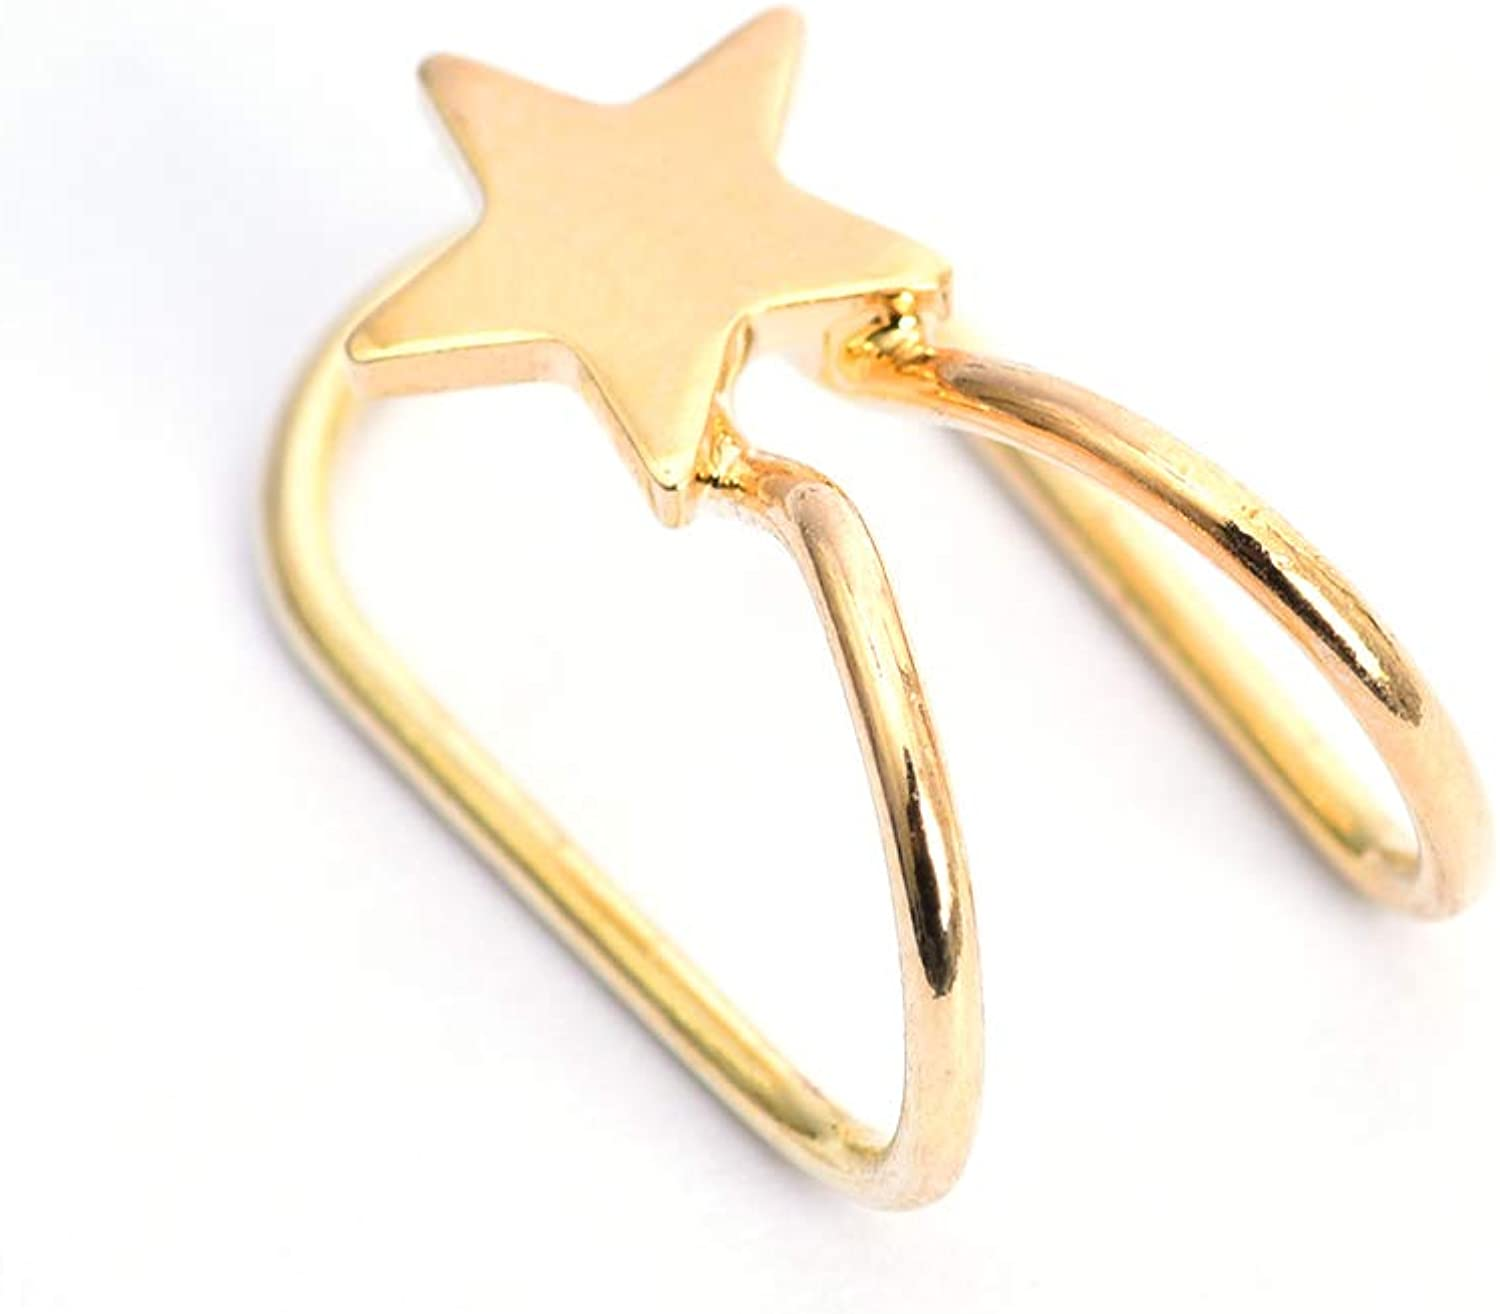 KAKA Gold Plated Cuff Earrings for Women and Girls Star Shape Adjustable Ear Clip Cuff Earring Gifts, Golden